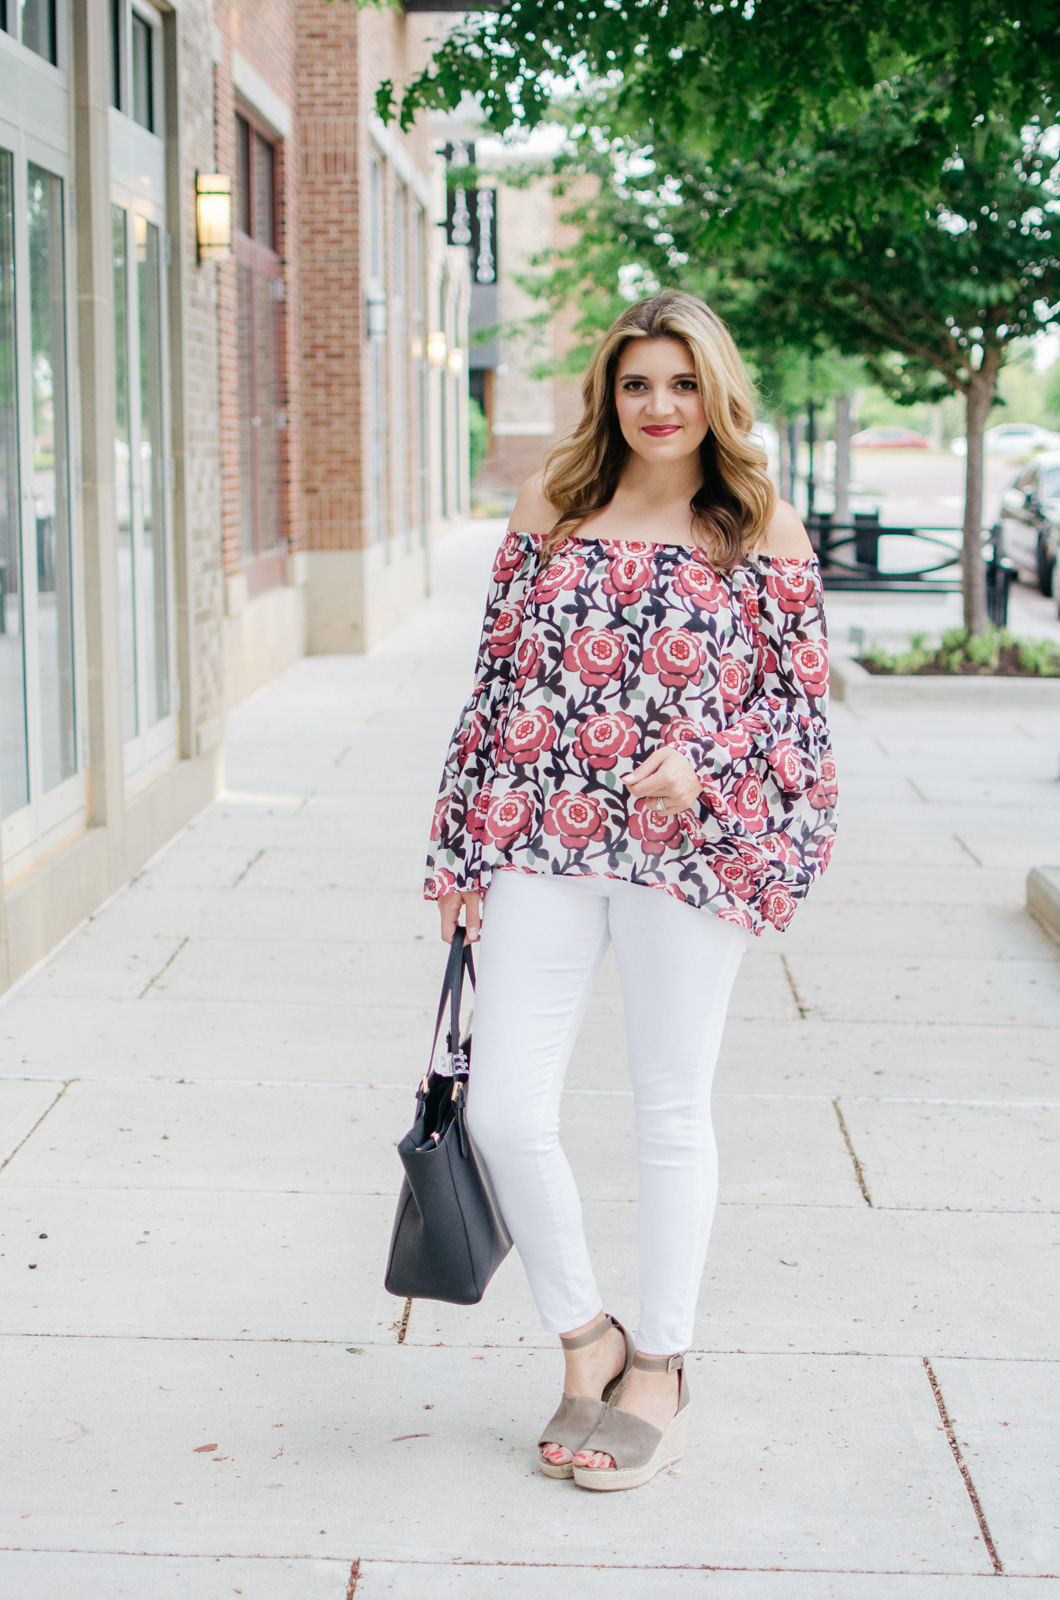 cute spring outfit - floral print off shoulder top | For more of the best Spring outfits, head to bylaurenm.com!